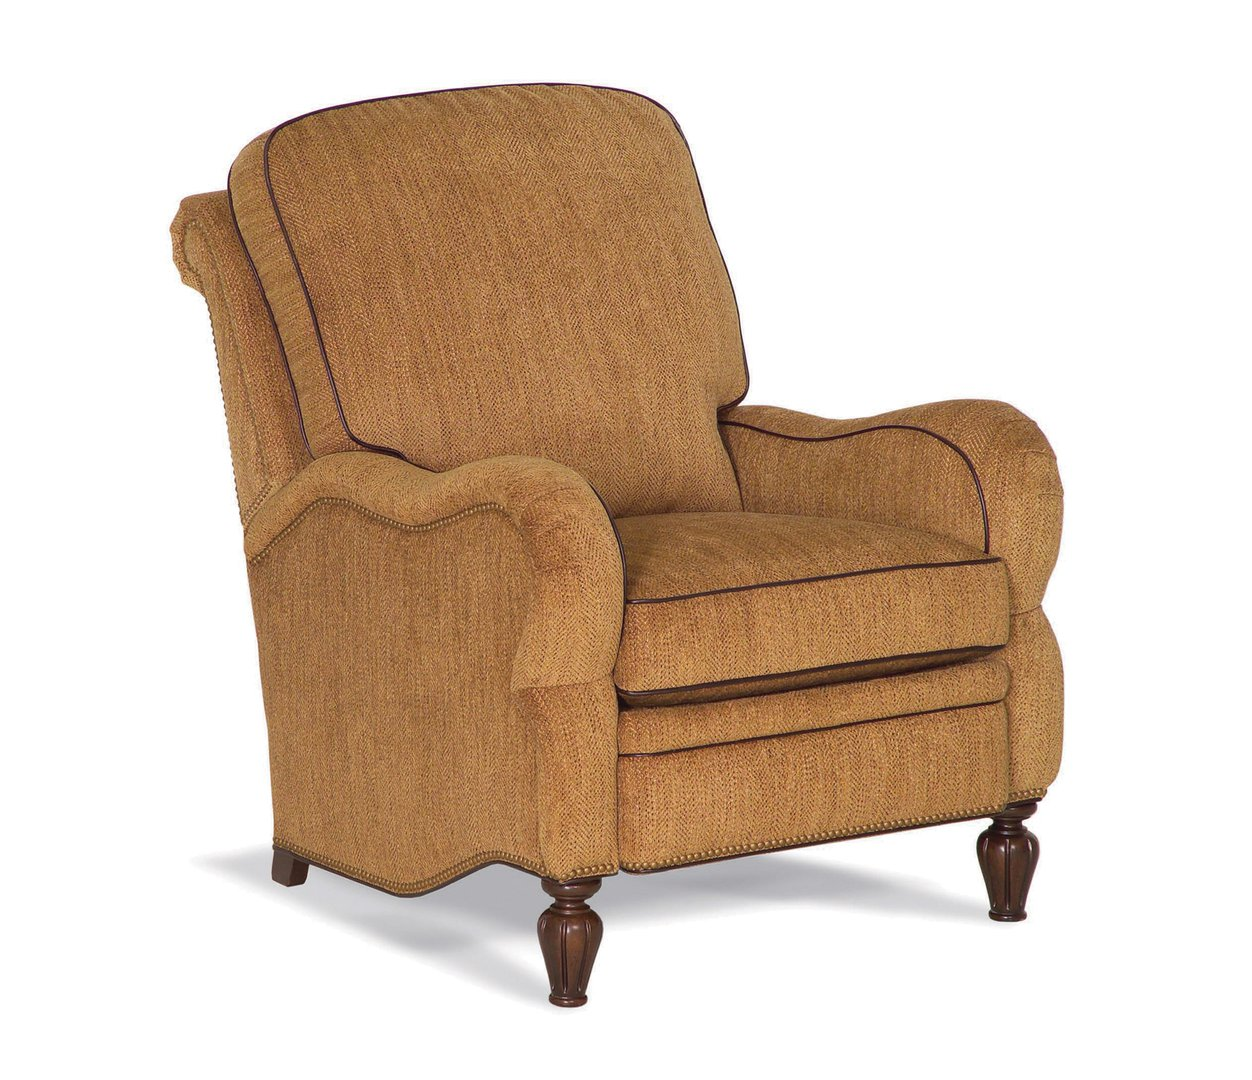 HENLEY RECLINING CHAIR Image